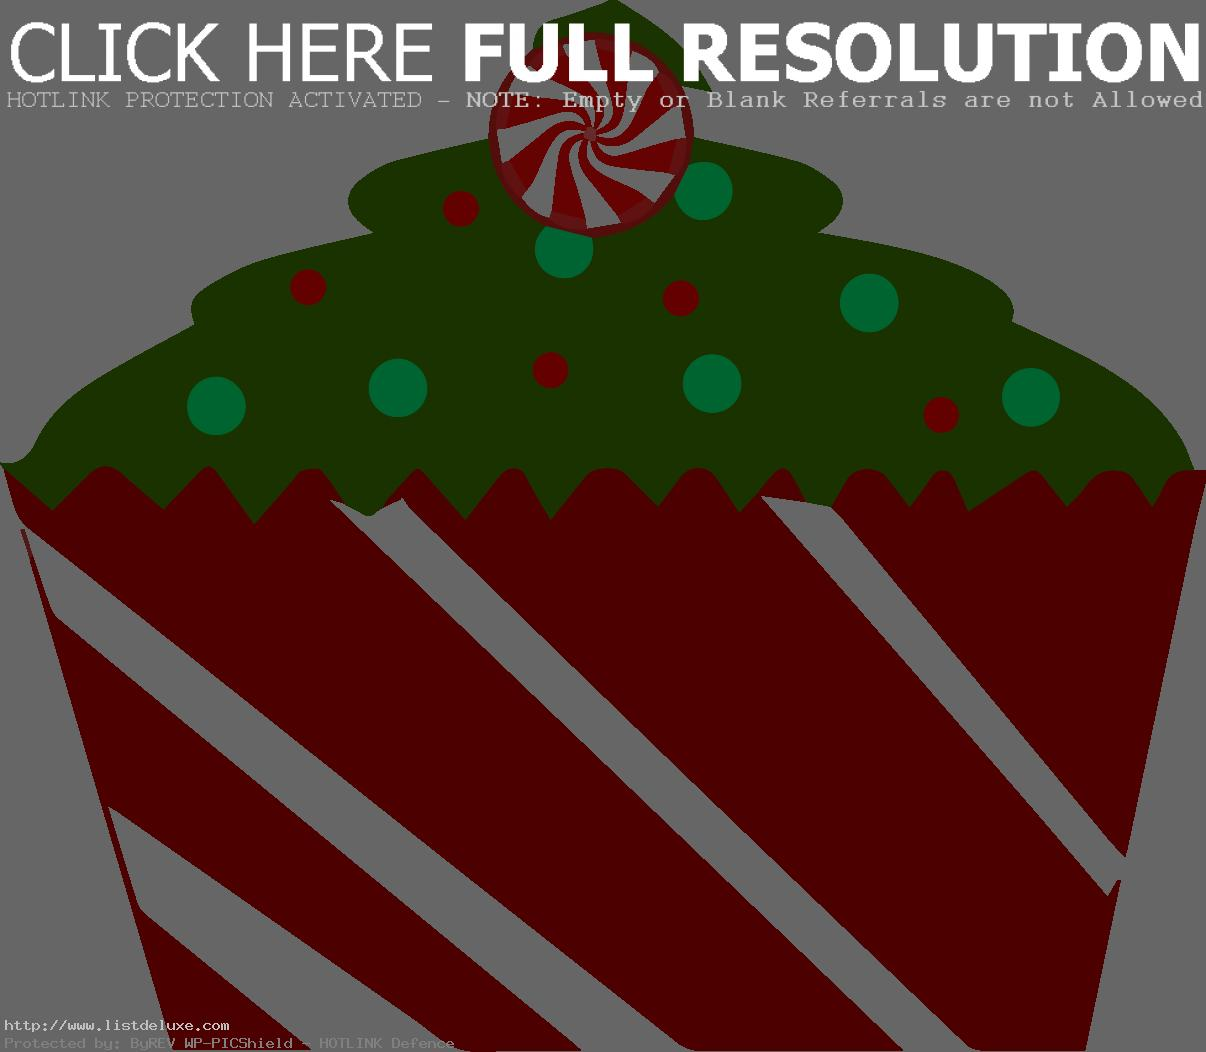 Christmas birthday cake transparent clipart. Clip art clipartninja christmastcakepngclipart